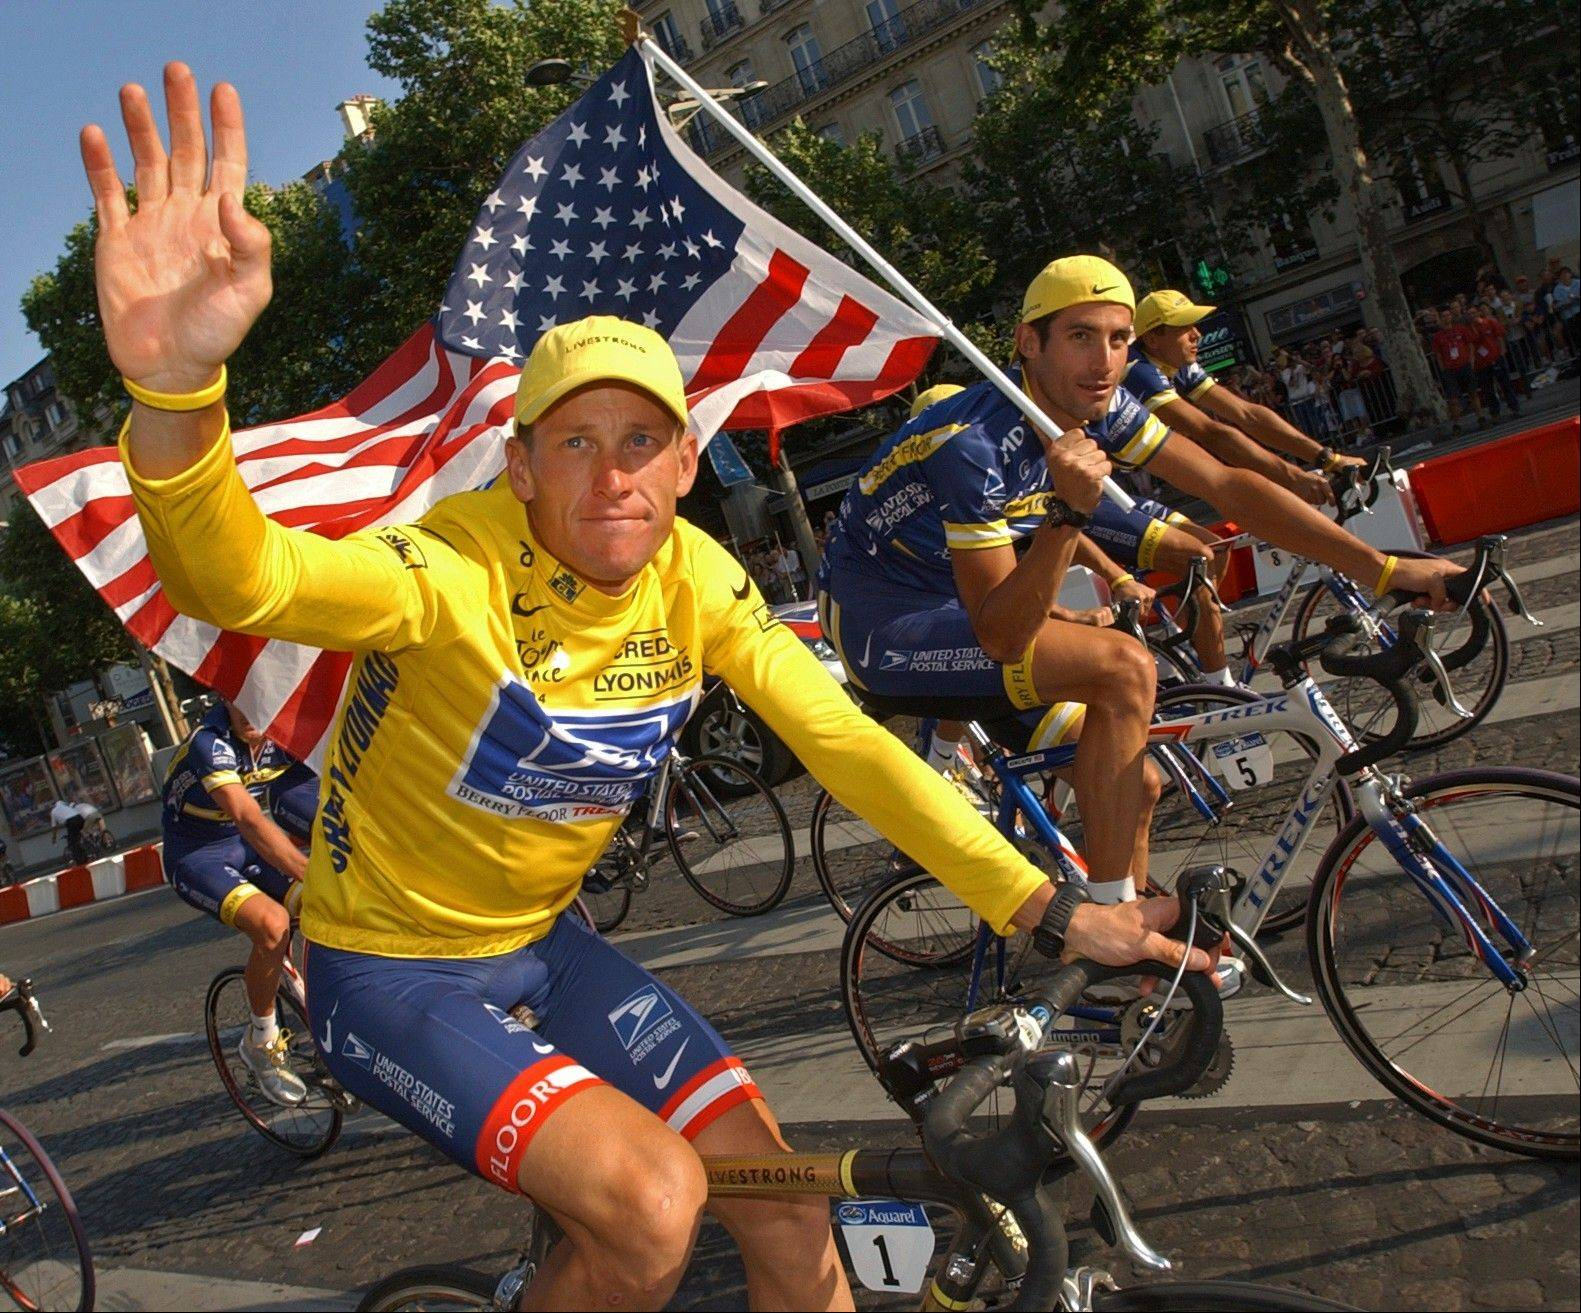 U.S. Postal Service cycling team leader and 2004 Tour de France winner Lance Armstrong, wearing the overall leader�s yellow jersey, and teammate George Hincapie, right, ride the victory lap on Champs Elysees boulevard in Paris, France. Lawyers for Armstrong say the Justice Department has joined a lawsuit against the cyclist.